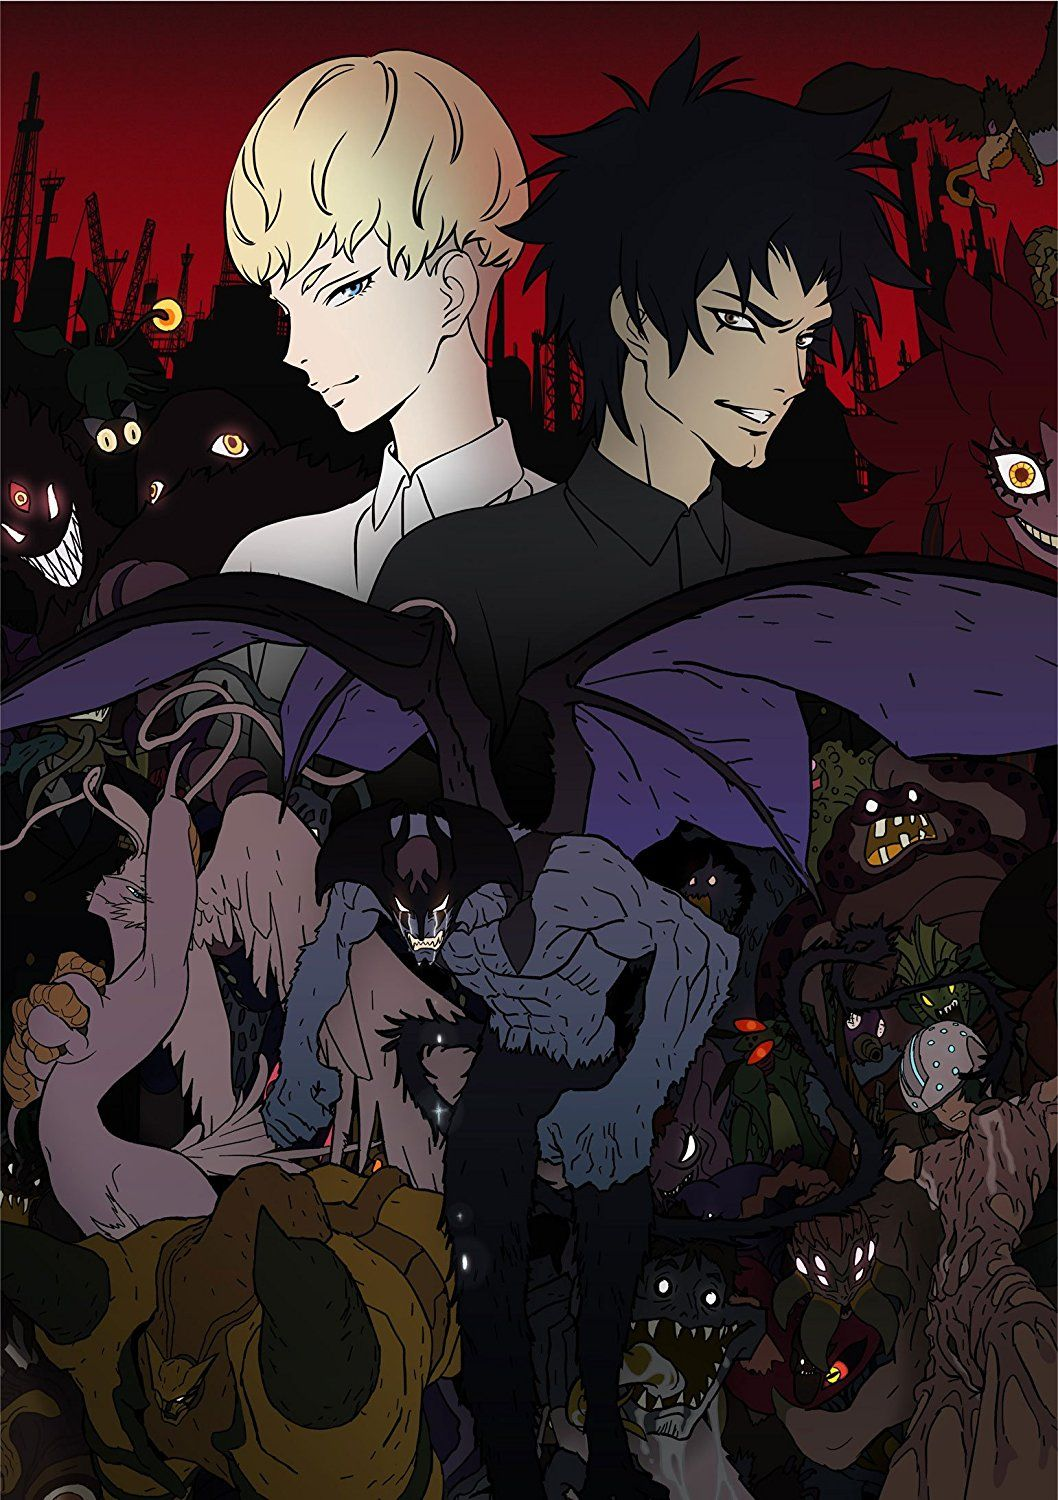 Pin by gk on AniManga Devilman crybaby, Anime, Cry baby